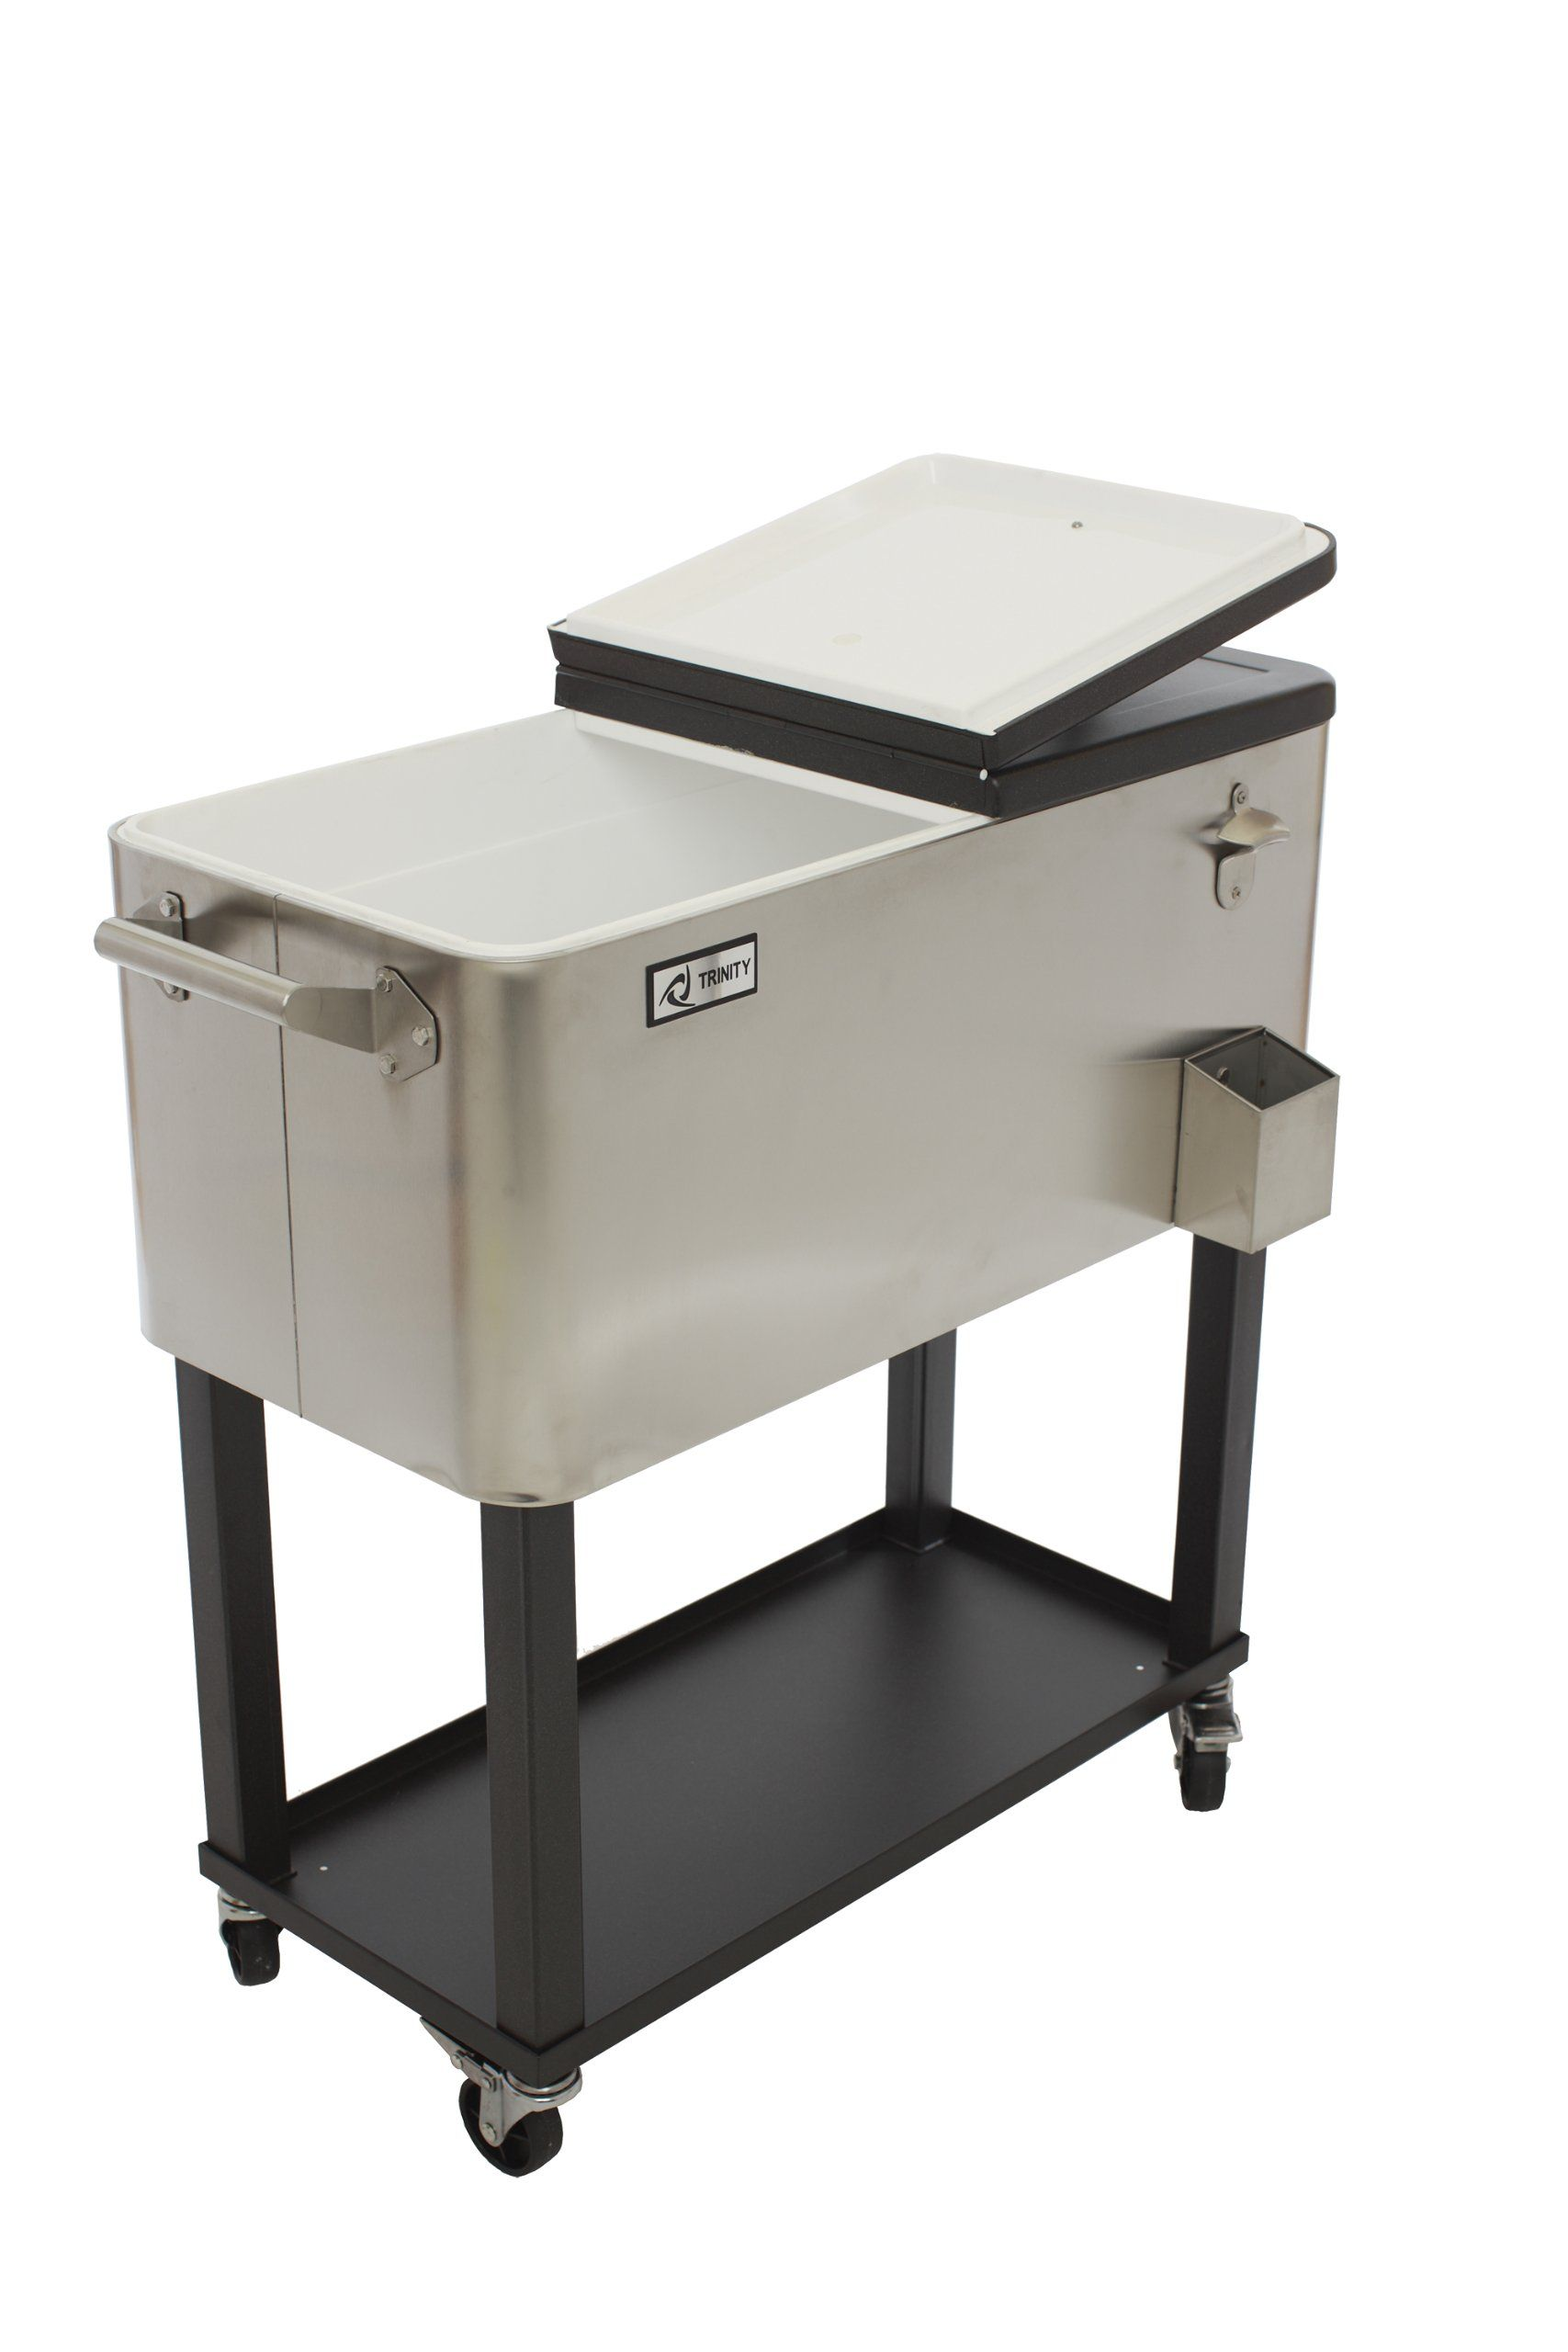 TRINITY THL0802 Stainless Steel Cooler with